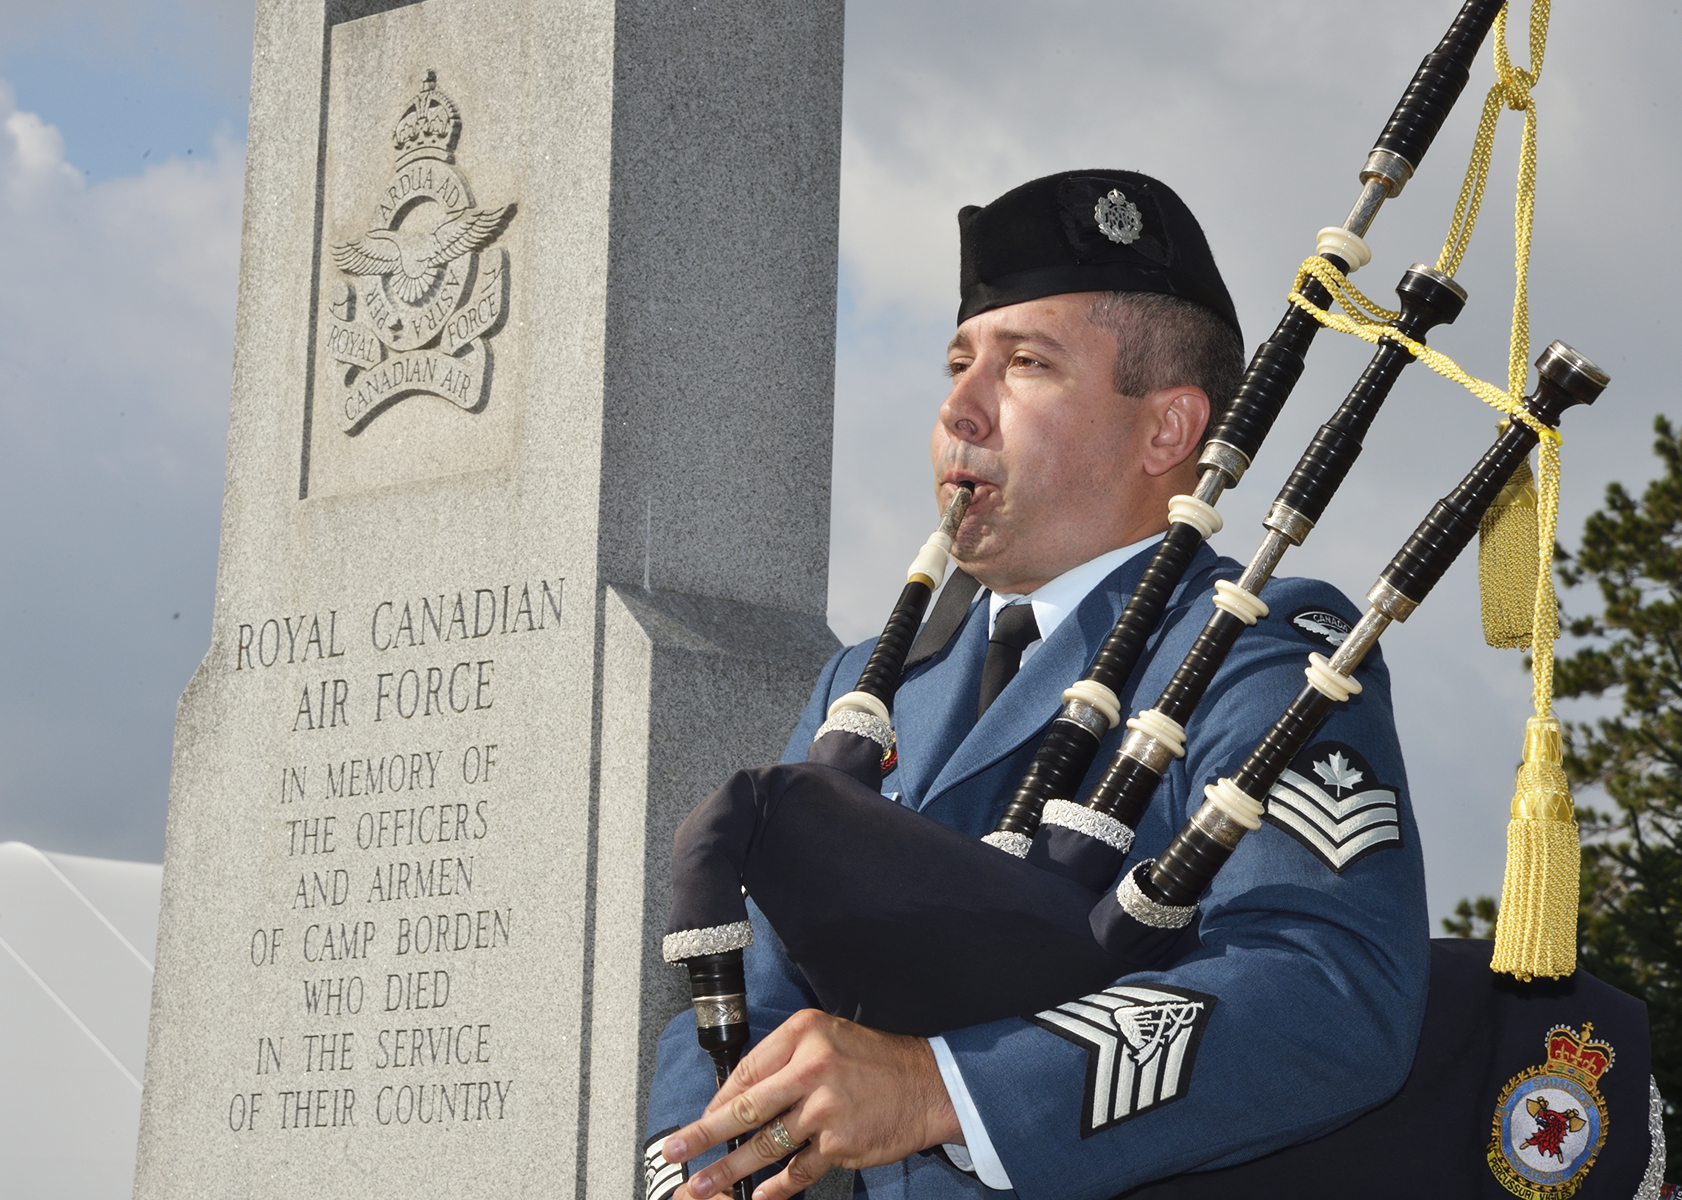 Sergeant Matthew MacIsaac pipes the Lament during the Battle of Britain parade held at the Royal Canadian Air Force cenotaph at Canadian Forces Base Borden, Ontario, on September 18, 2016. PHOTO: Master Corporal Miranda Langguth, BM02-2016-0271-17